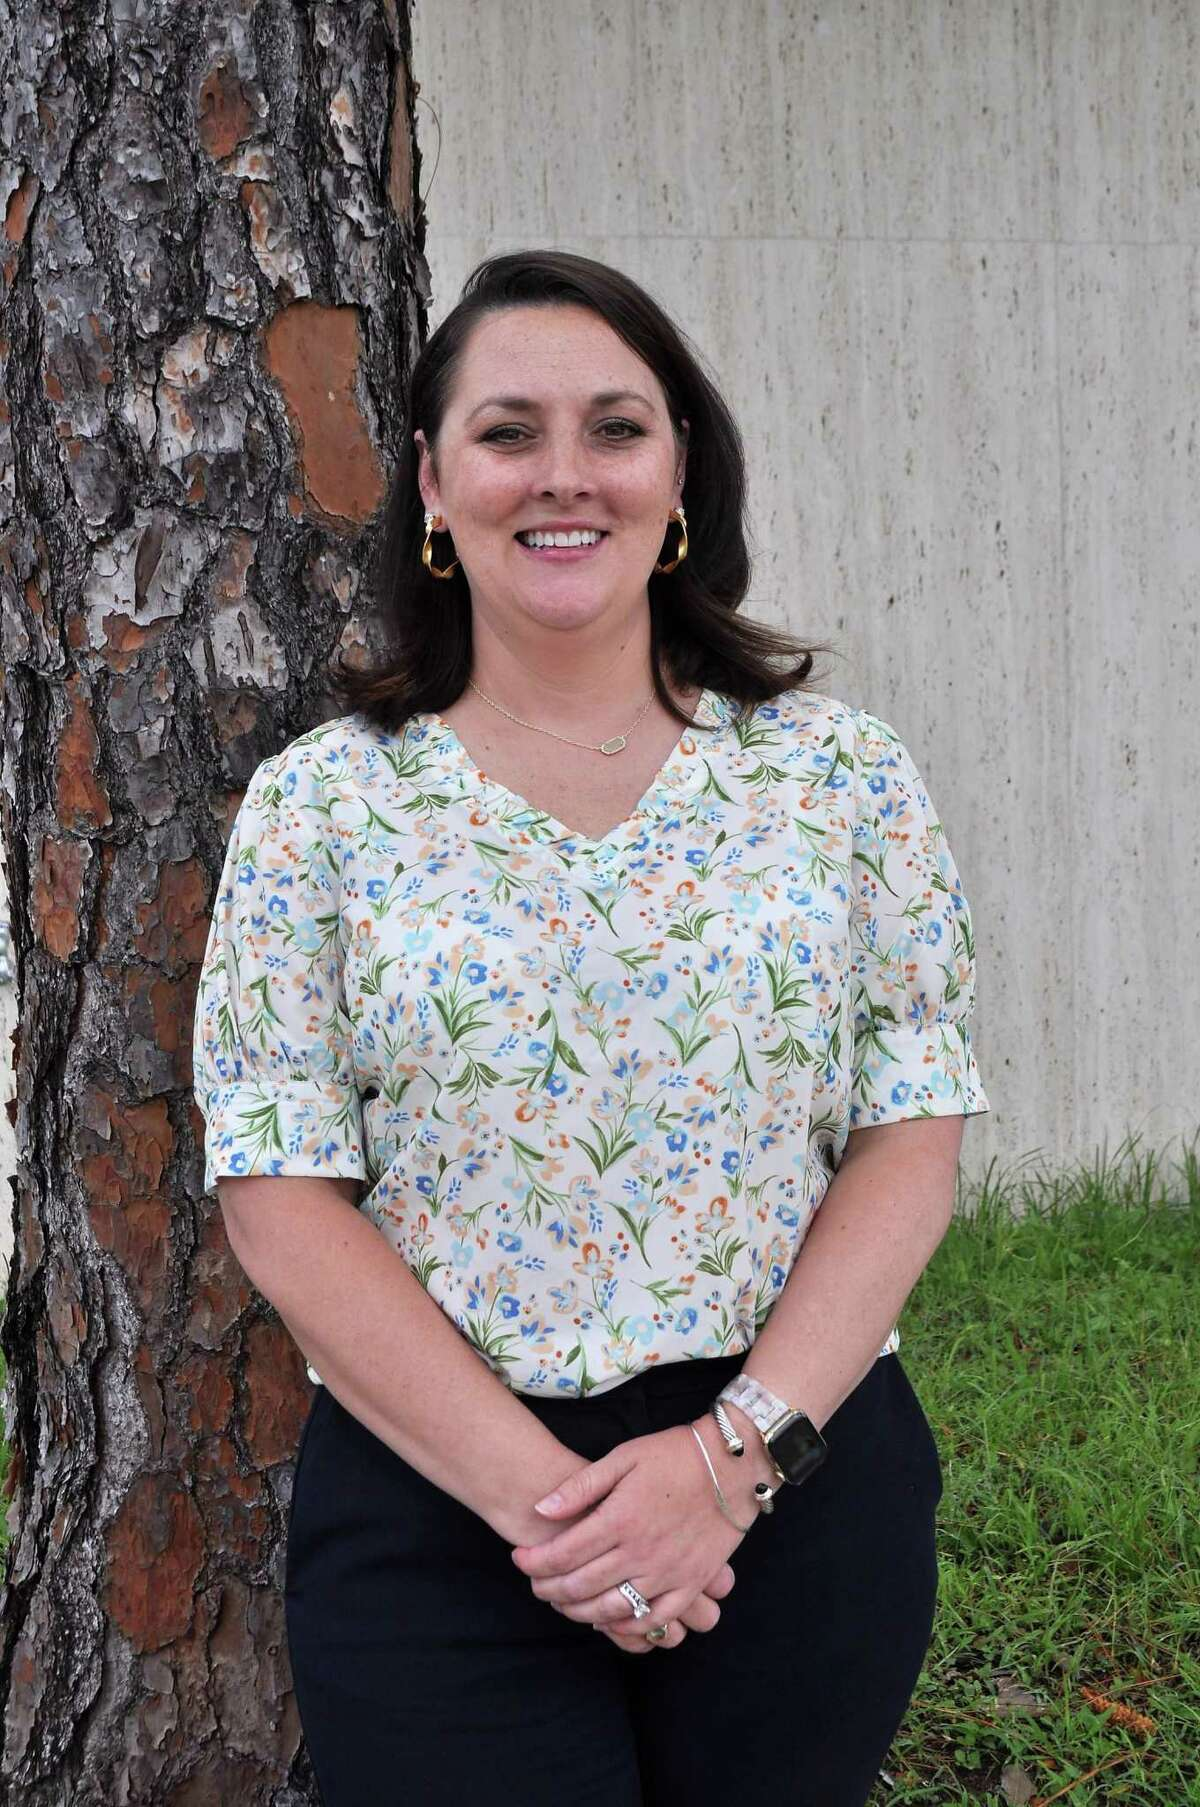 Hillary Hiler is the new principal at Frostwood Elementary School